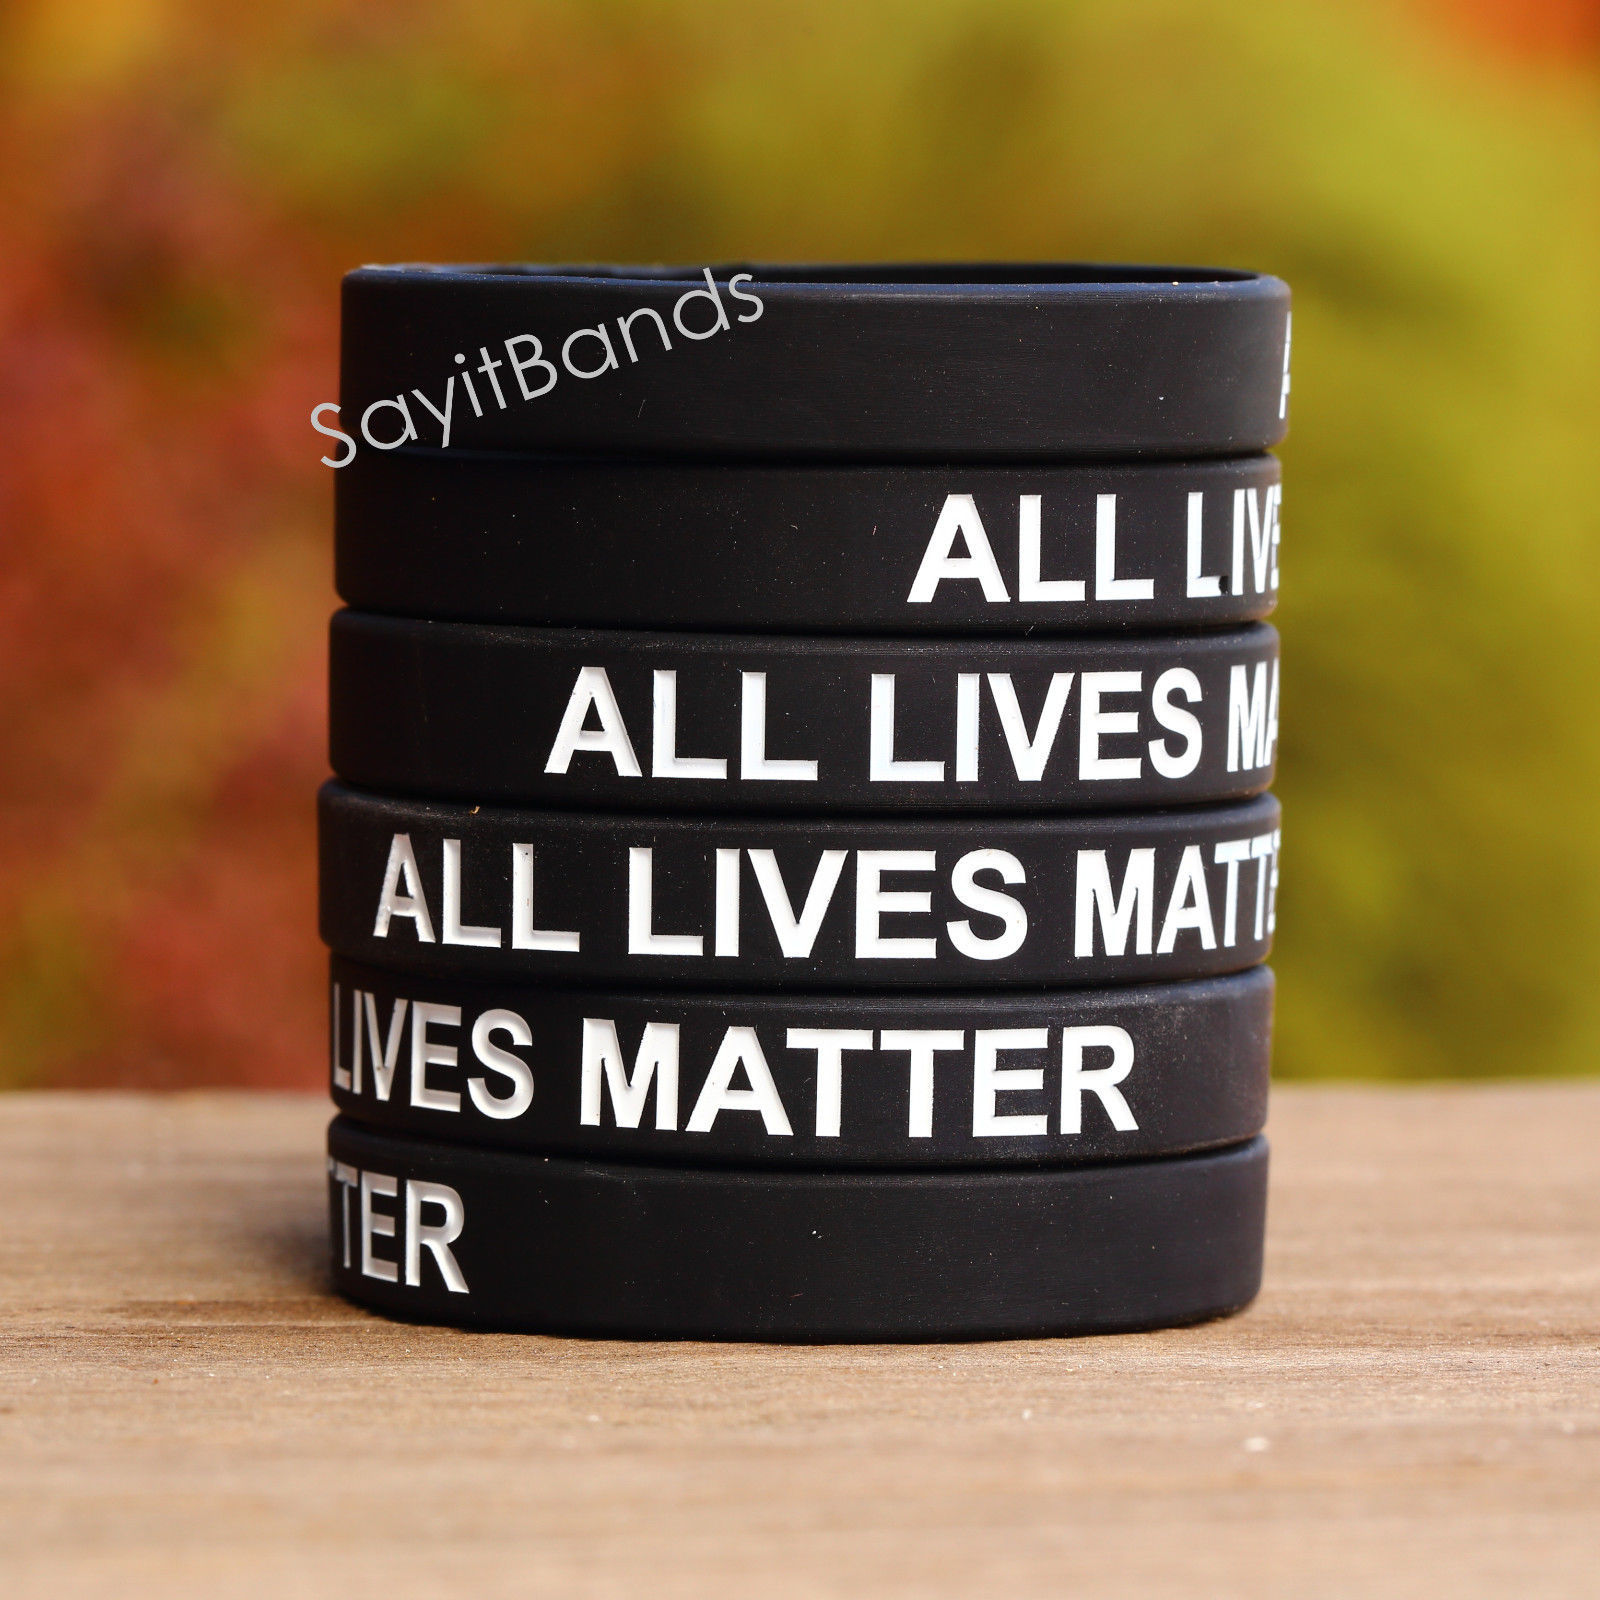 Primary image for Fifty (50) ALL LIVES MATTER Silicone Wristband in Adult or Child Size